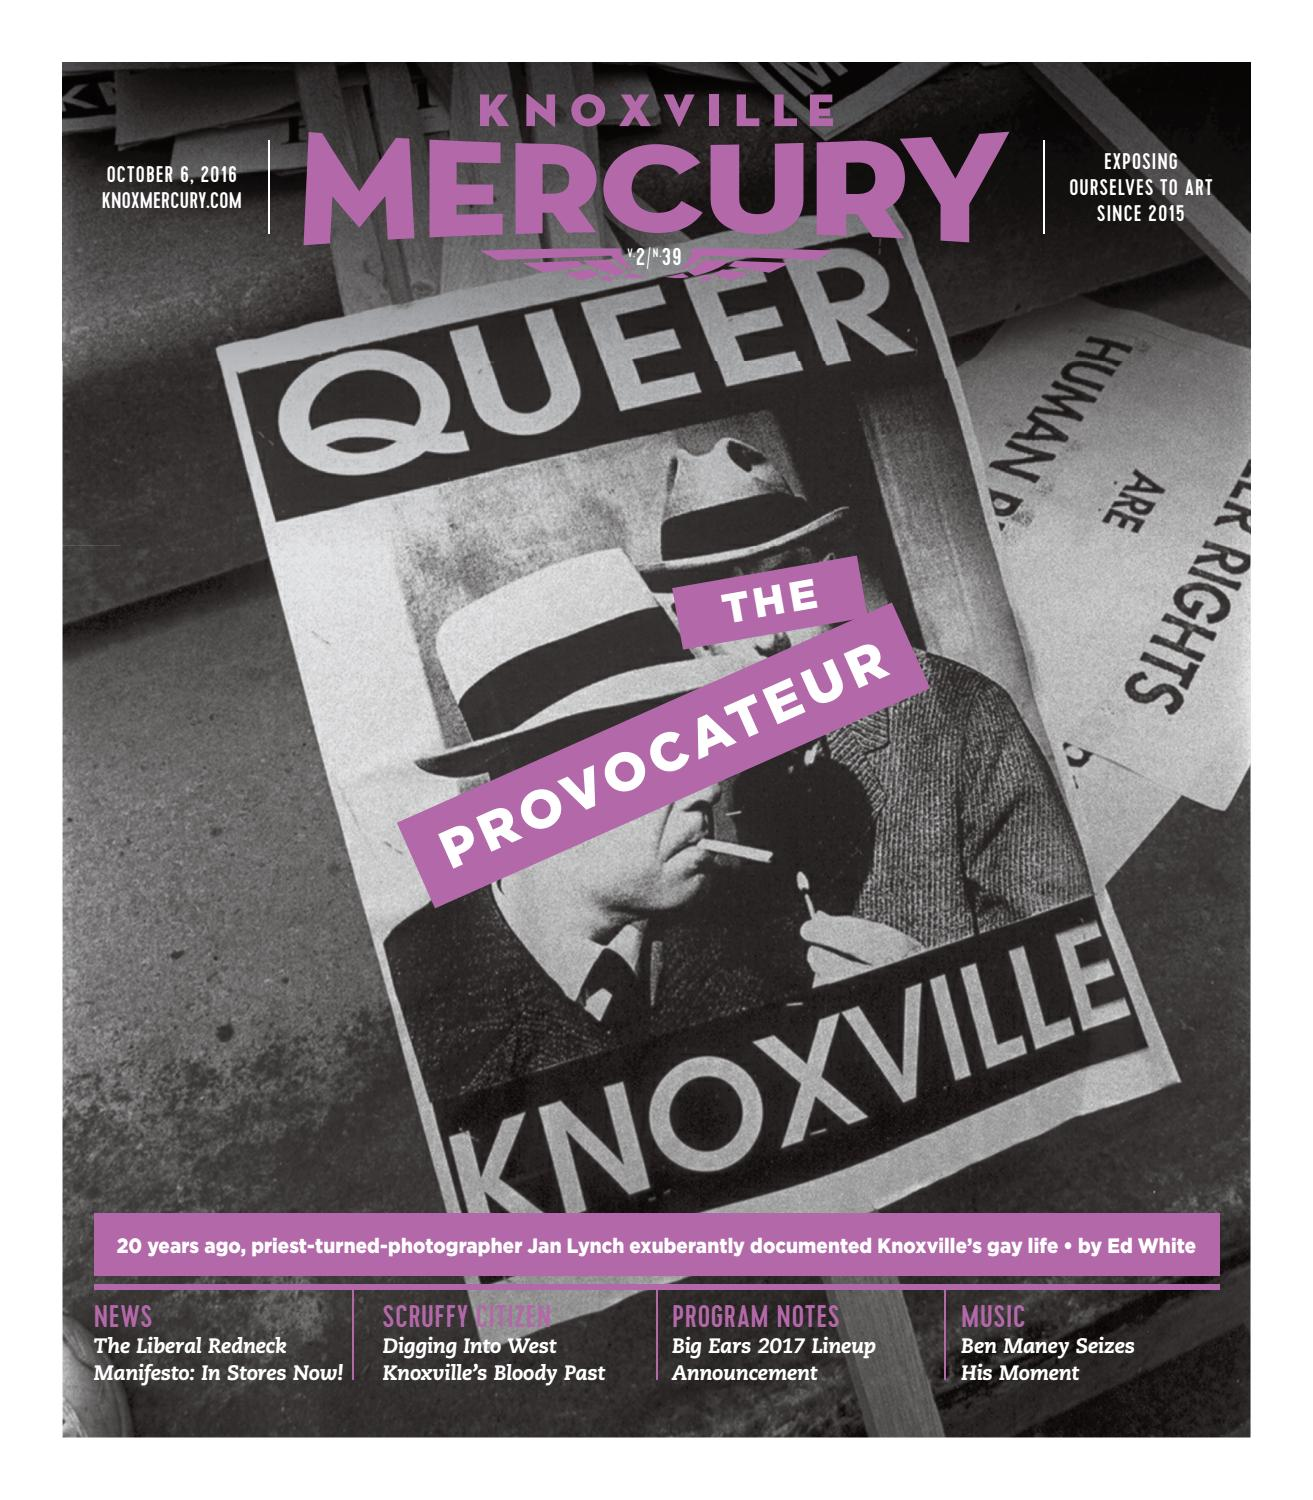 Vol  2, Issue 39 Oct  06, 2016 by Knoxville Mercury - issuu